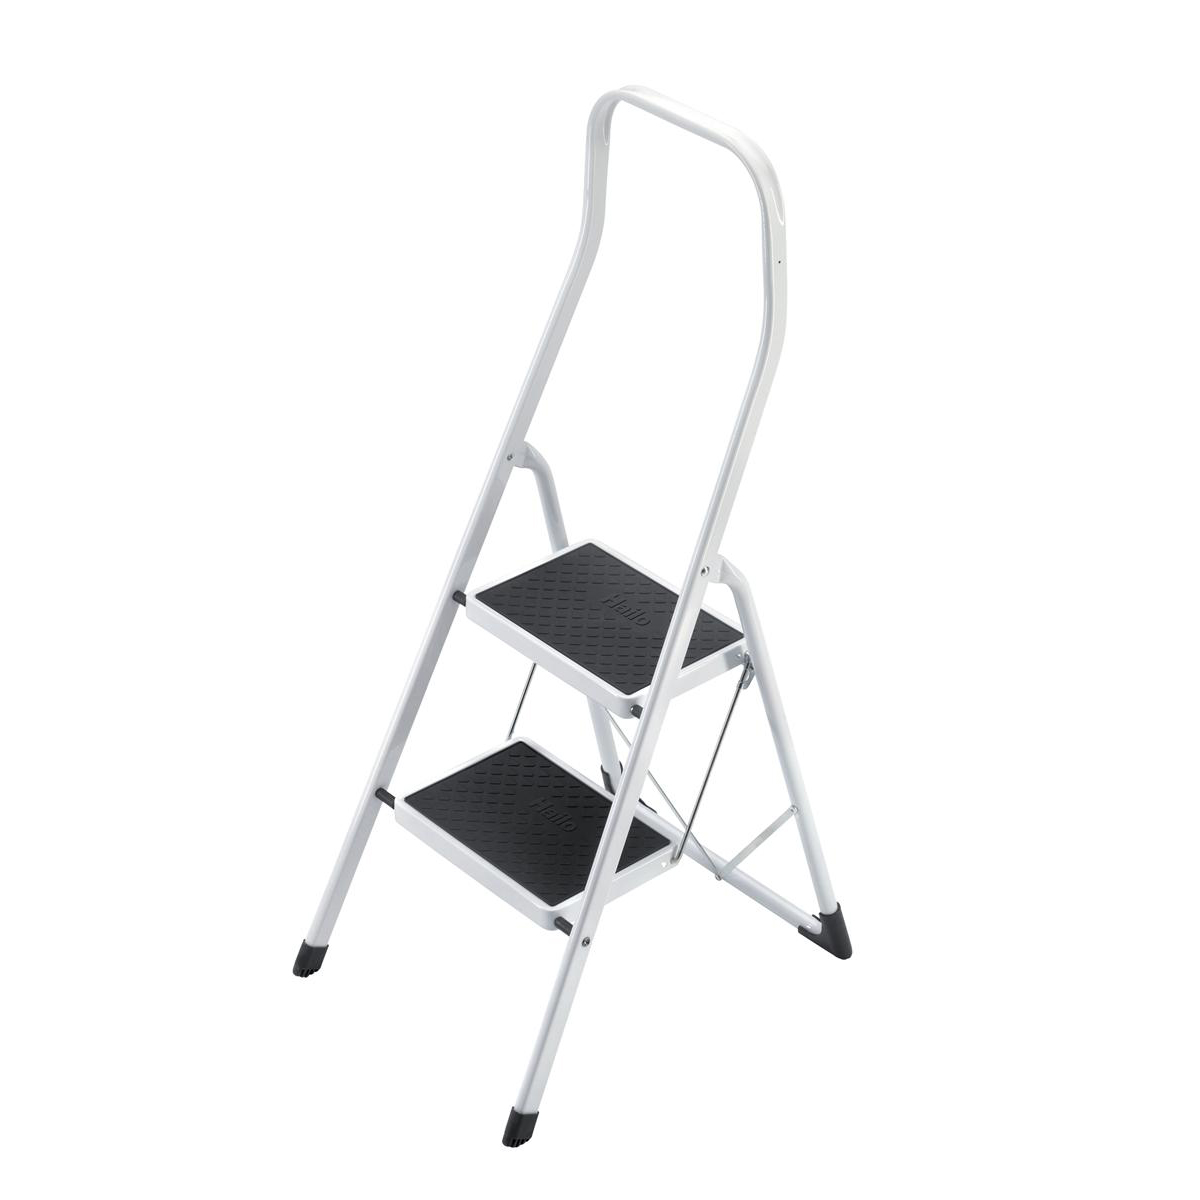 Image for 5 Star Facilities Safety Steps Folding Safety Rail H0.5m 2 Treads Capacity 150kg H2.26m 4.9kg